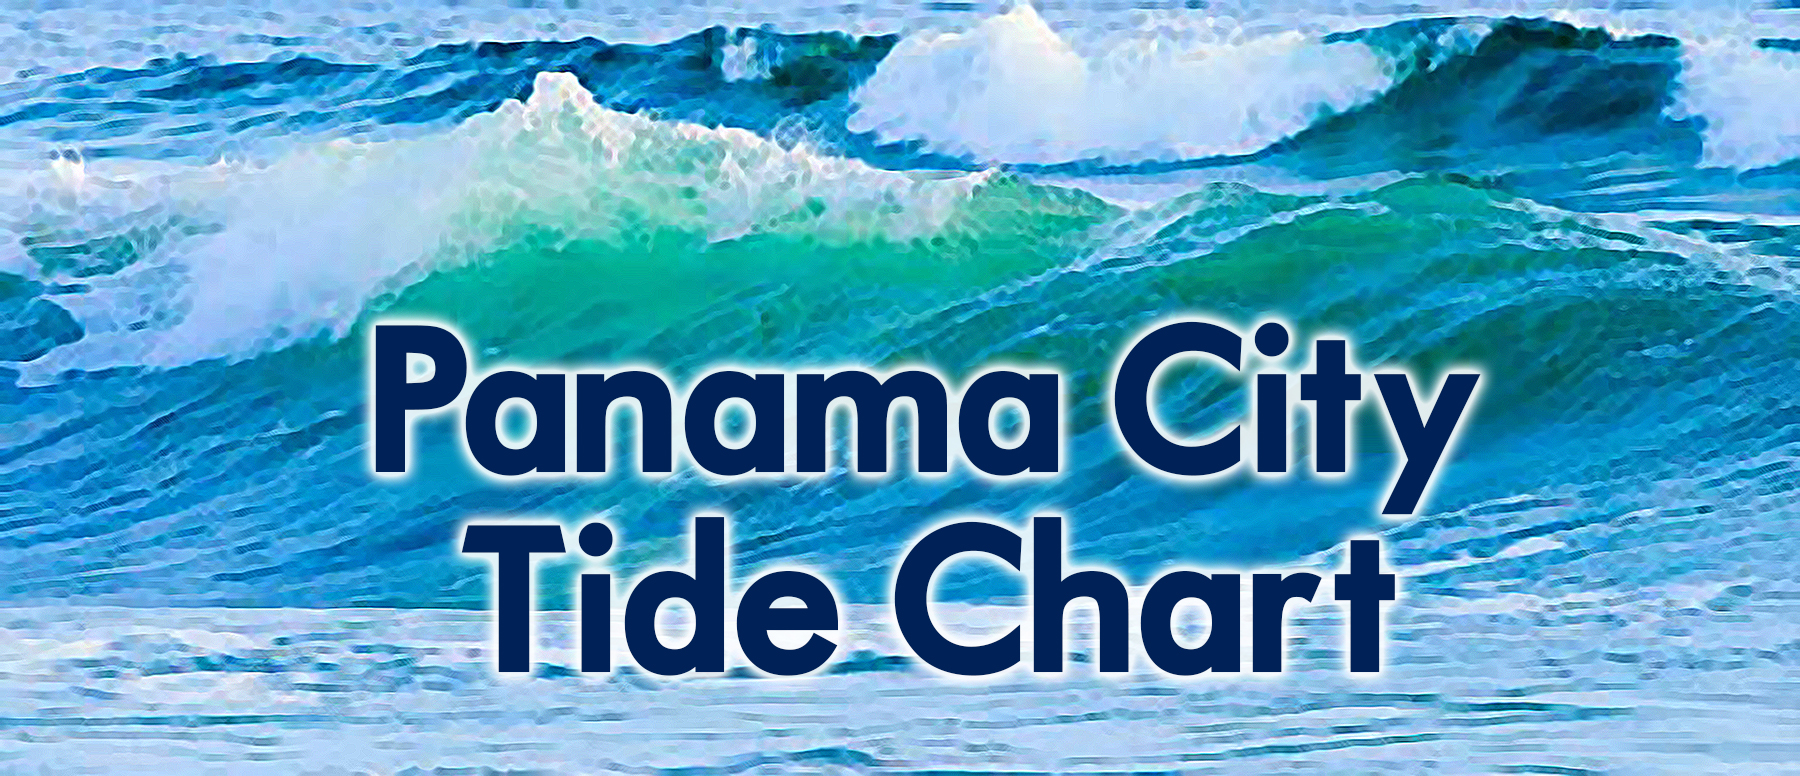 Texas tide chart images free any chart examples gulf of mexico tide chart image collections free any chart examples panama city tide chart image geenschuldenfo Image collections